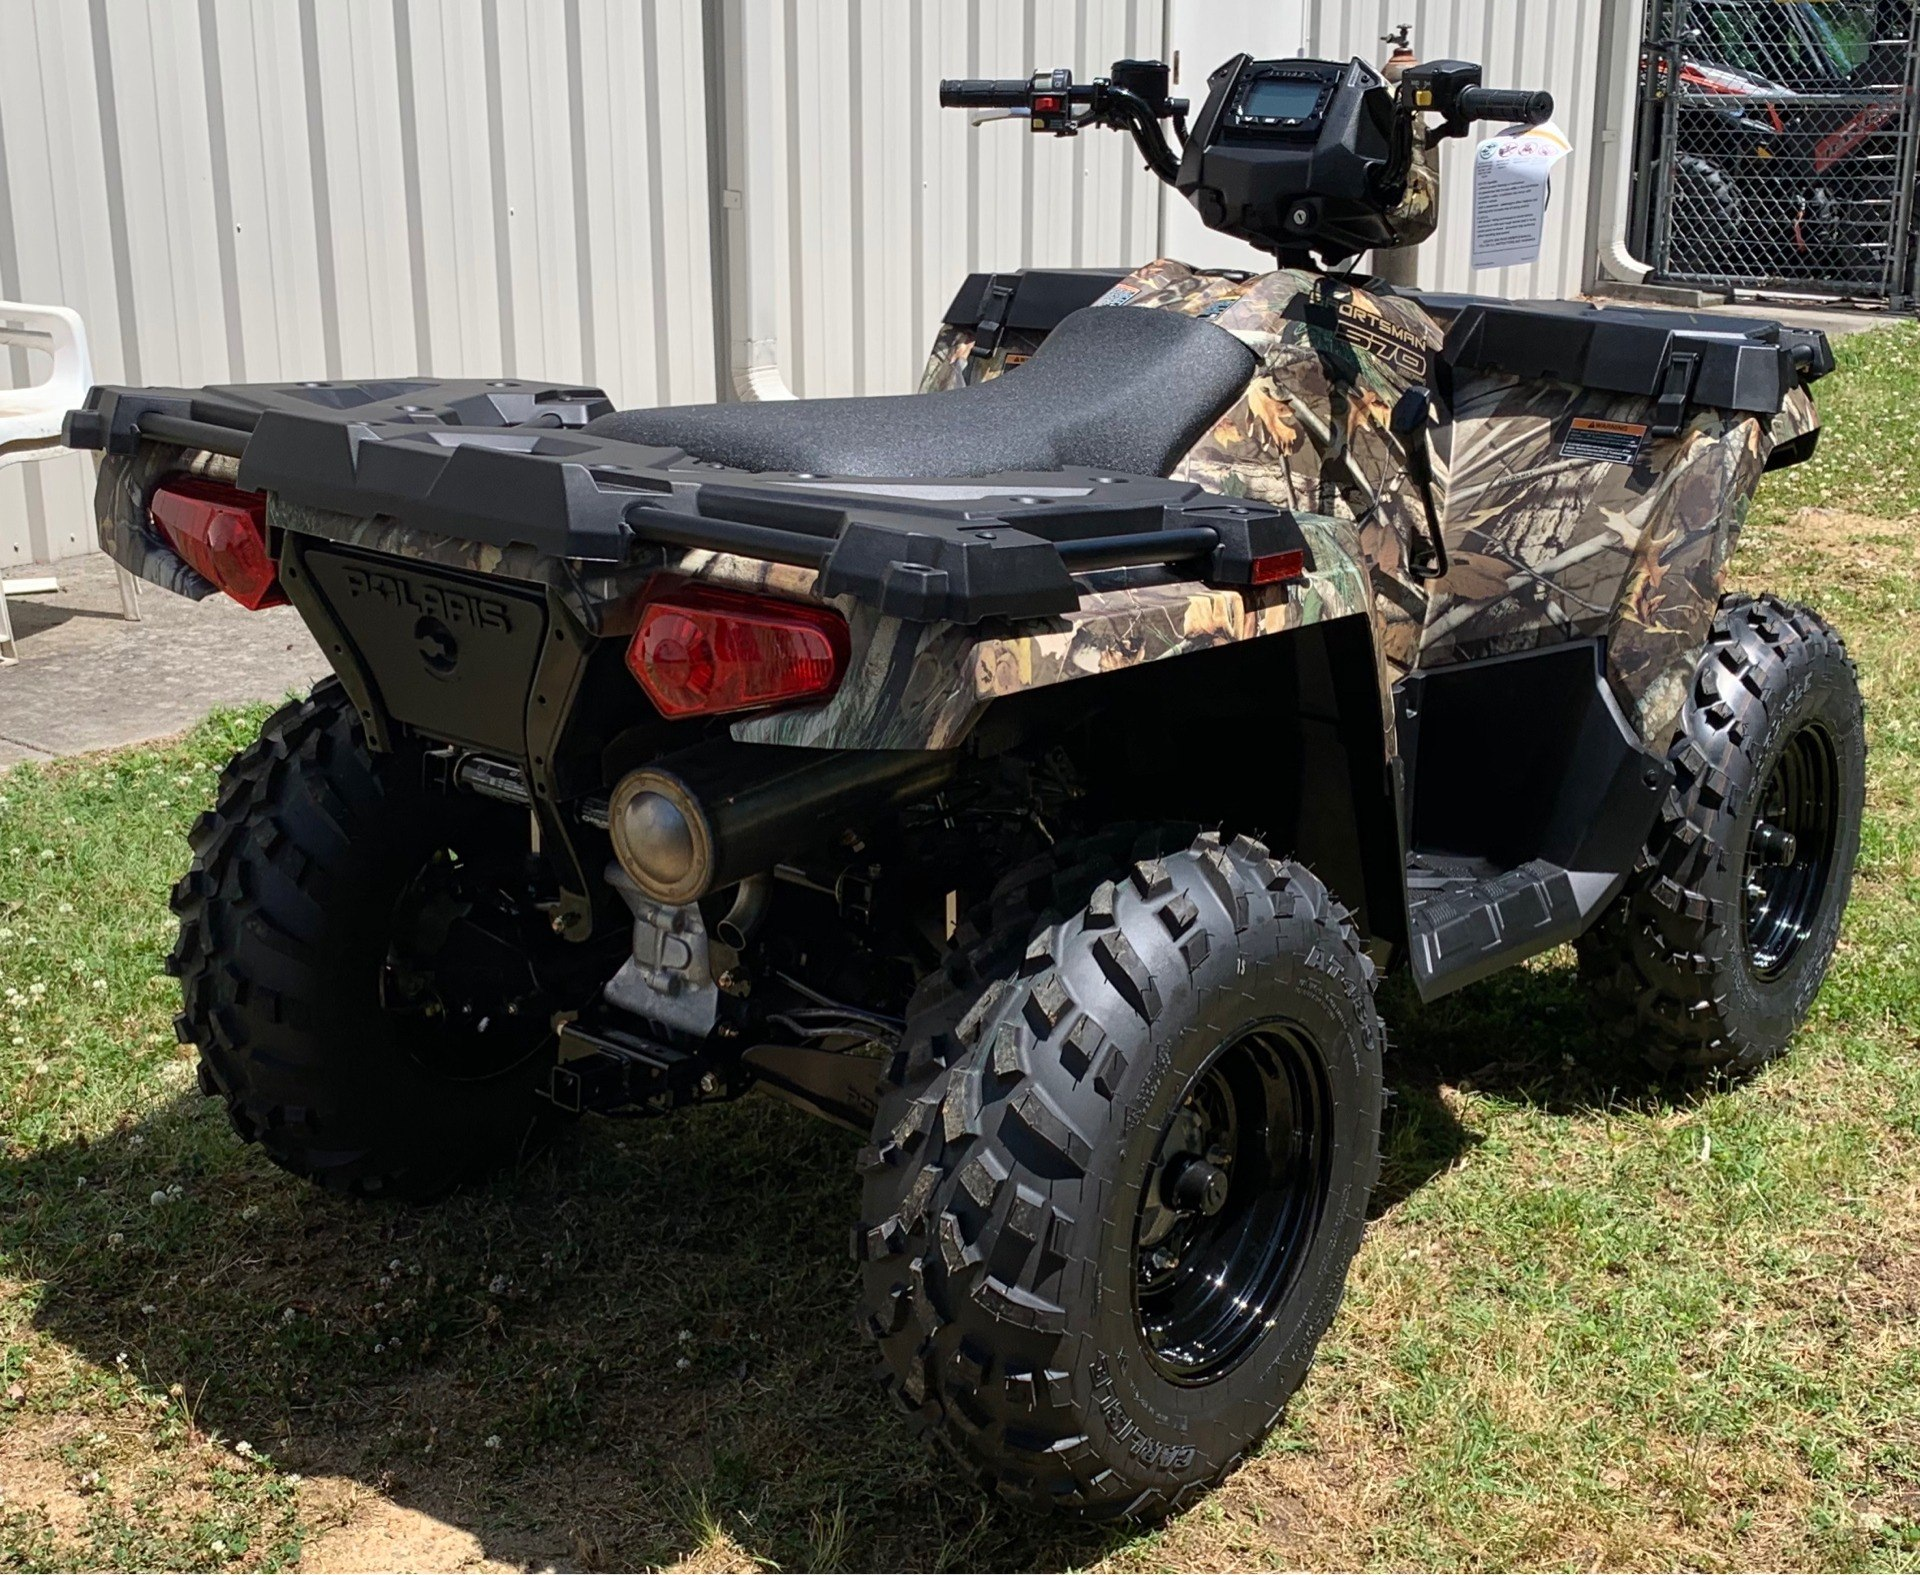 2019 Polaris Sportsman 570 EPS Camo in High Point, North Carolina - Photo 5